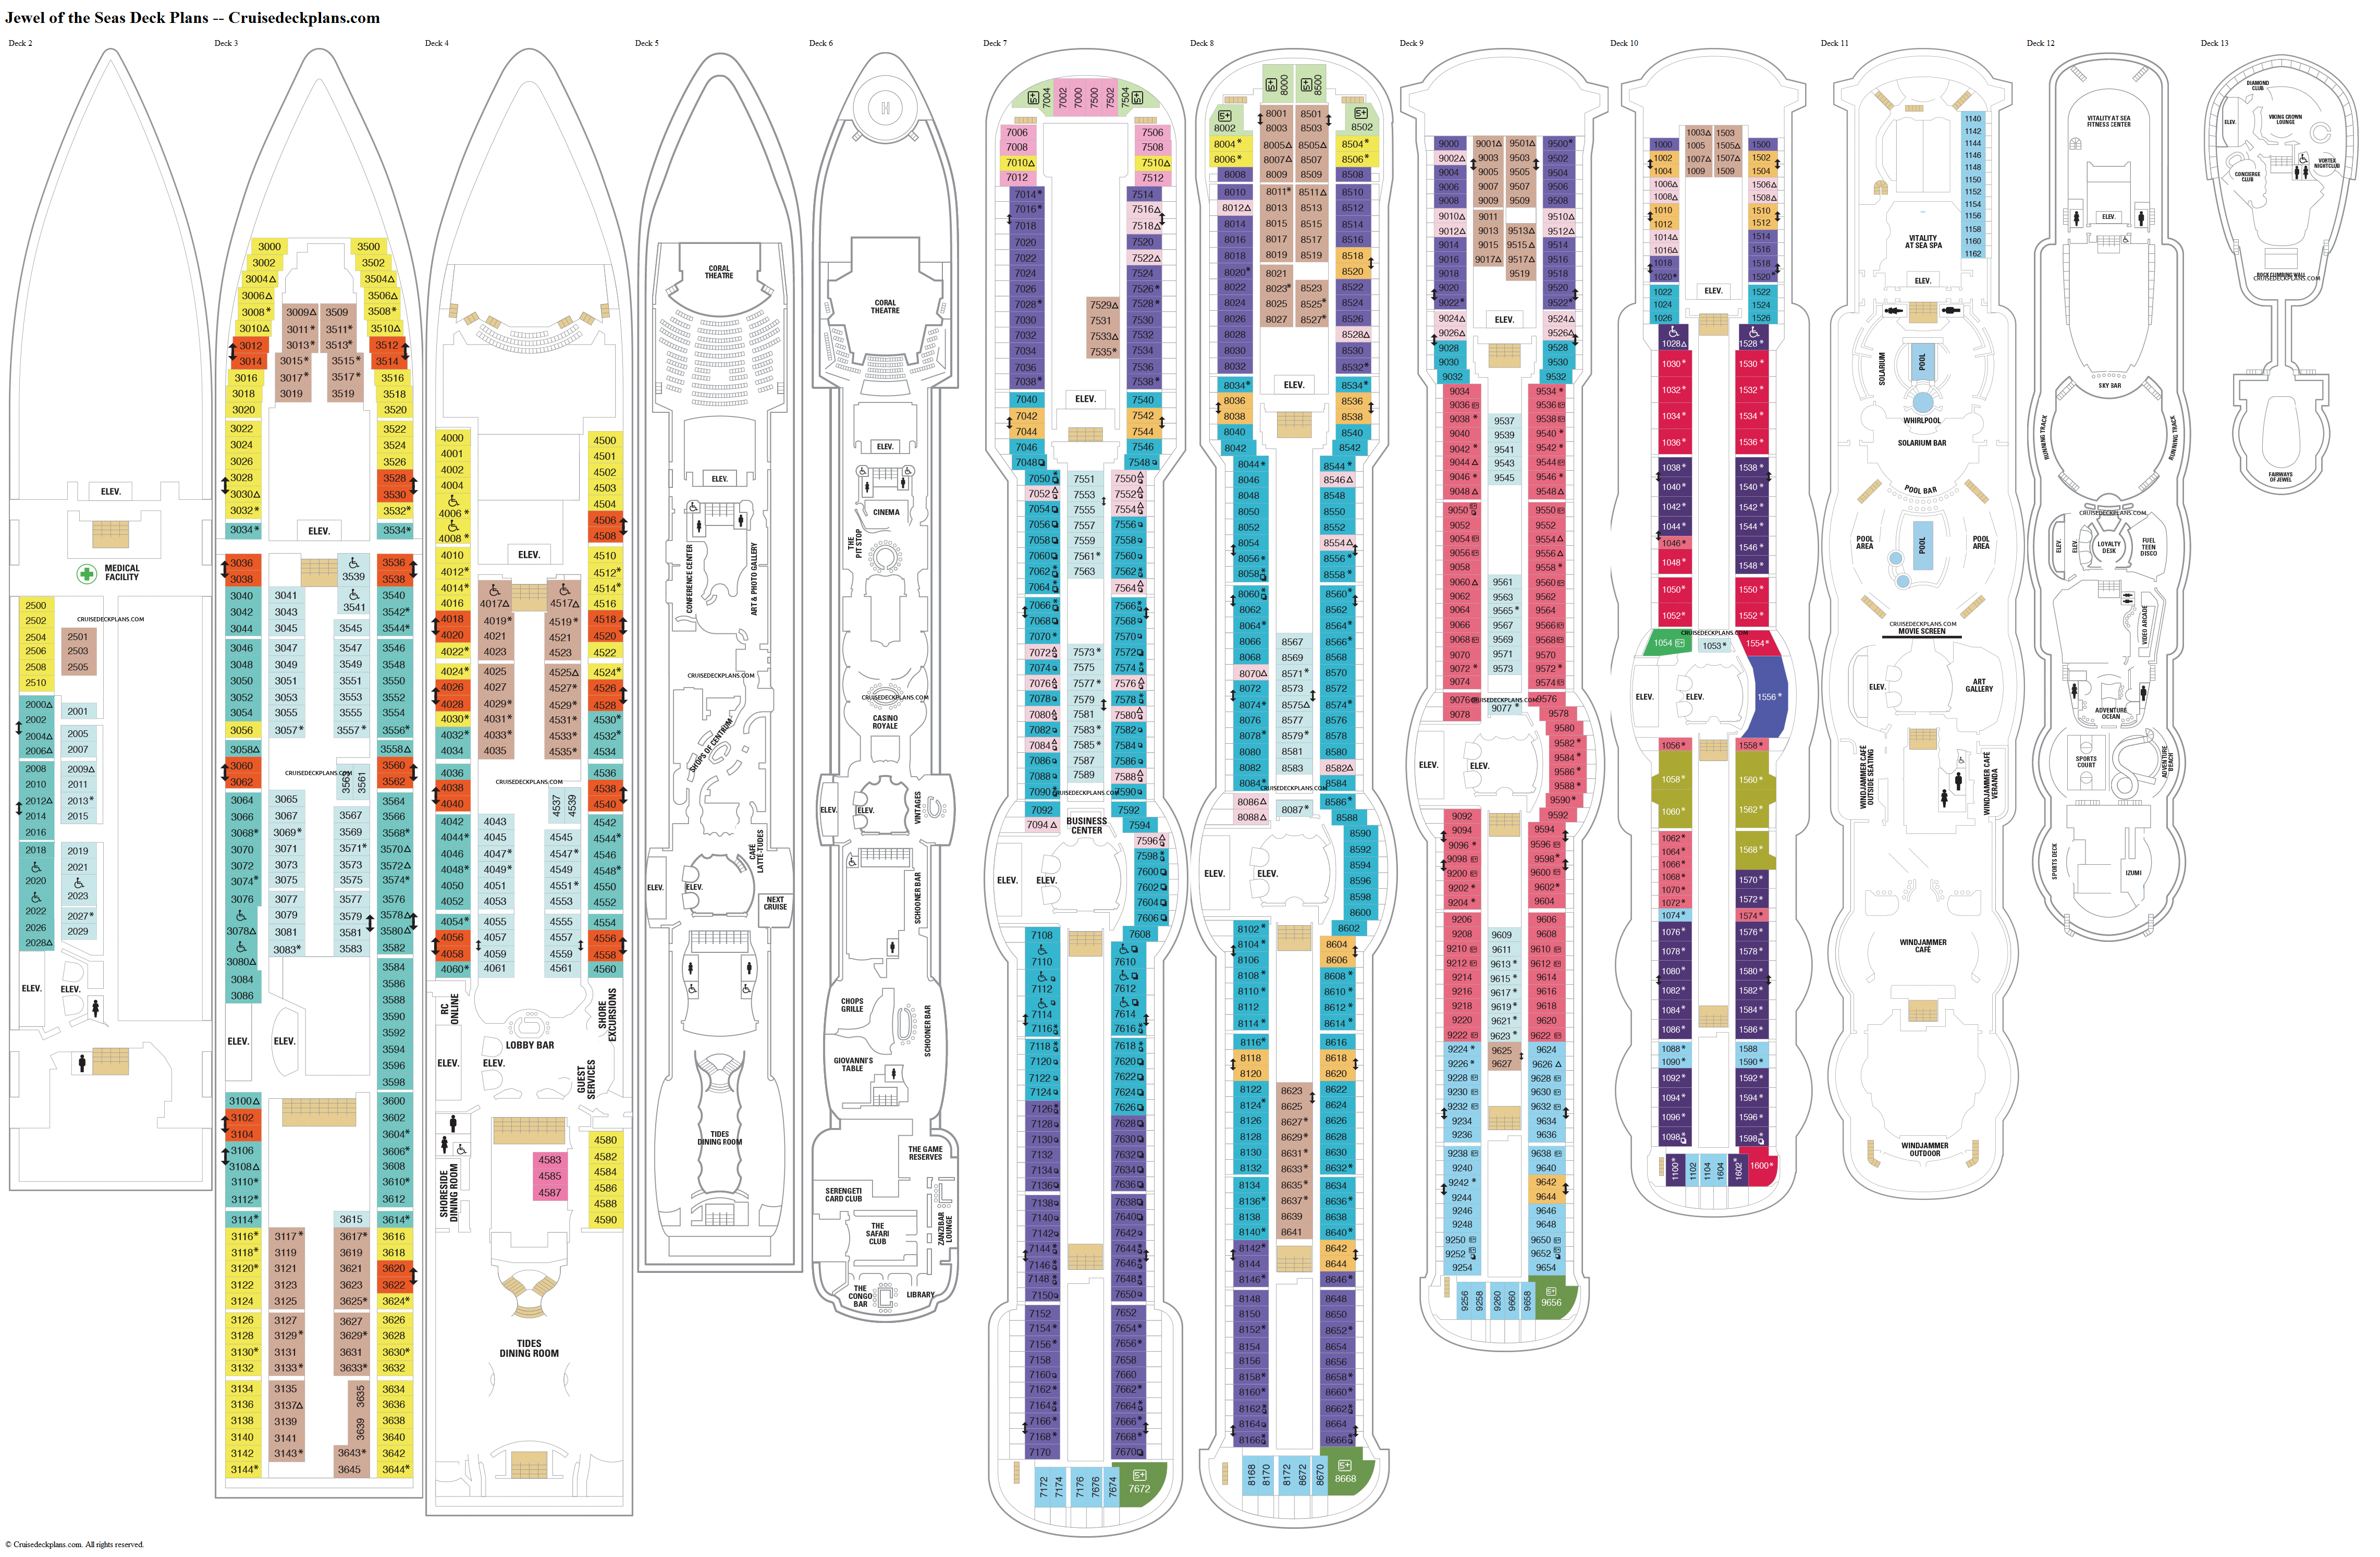 Jewel of the Seas deck plans image